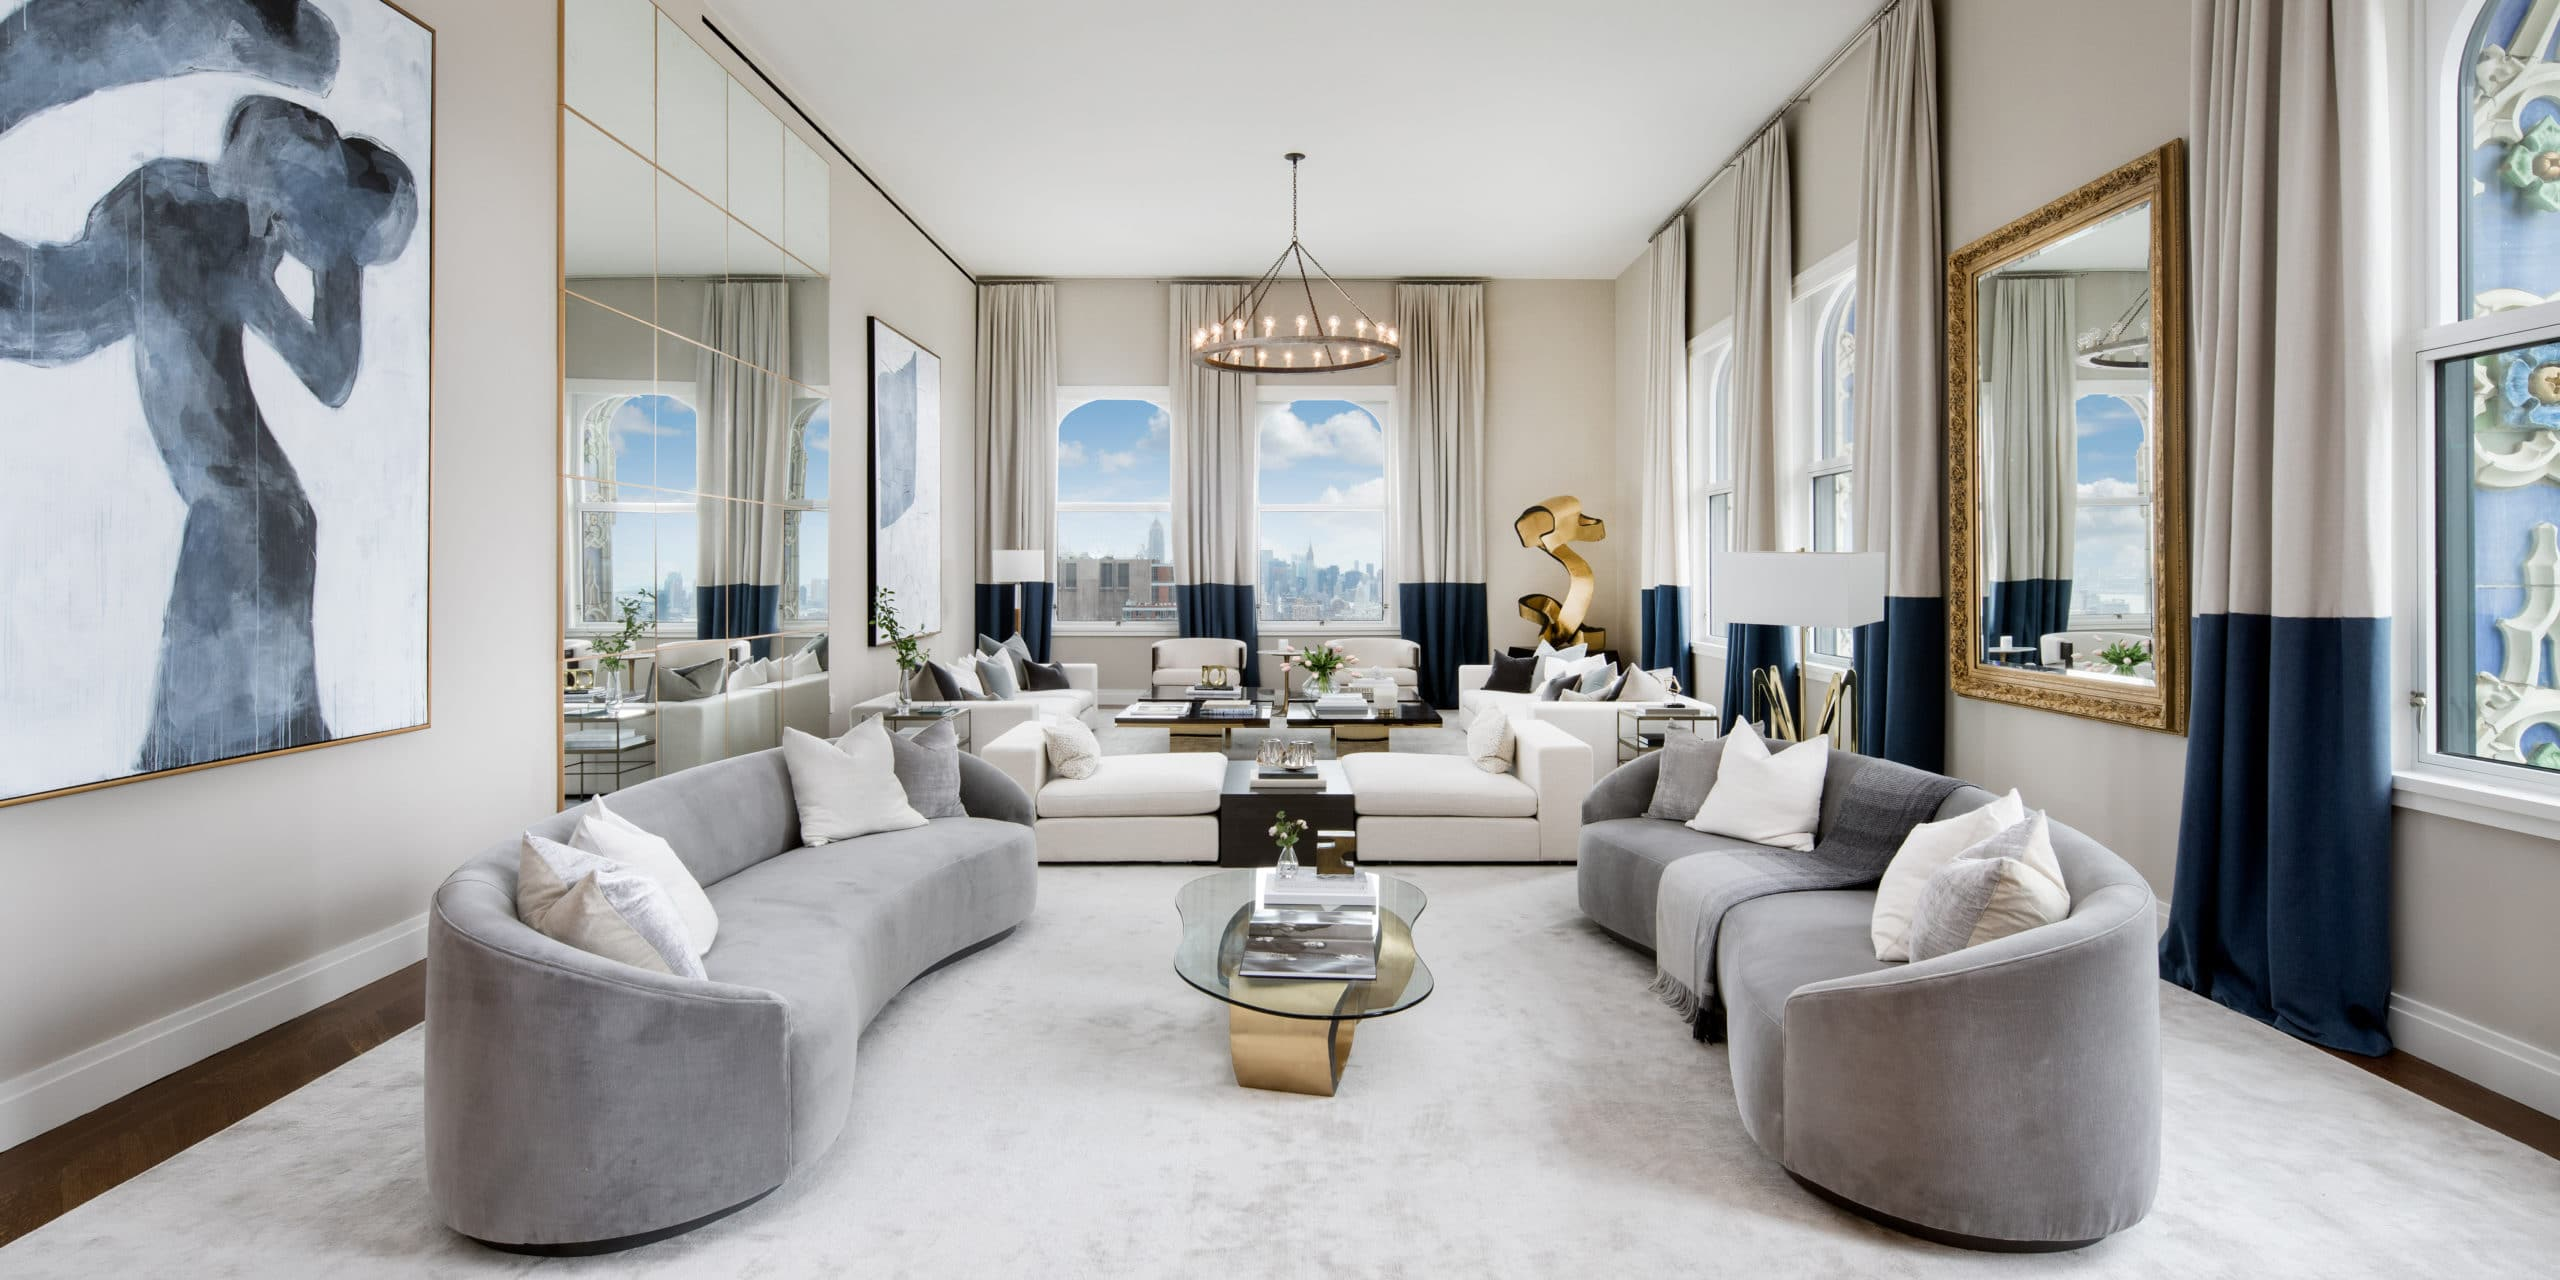 Living room at The Woolworth Tower luxury condos in NYC. High ceilings, off white walls, with curved couch and a painting.